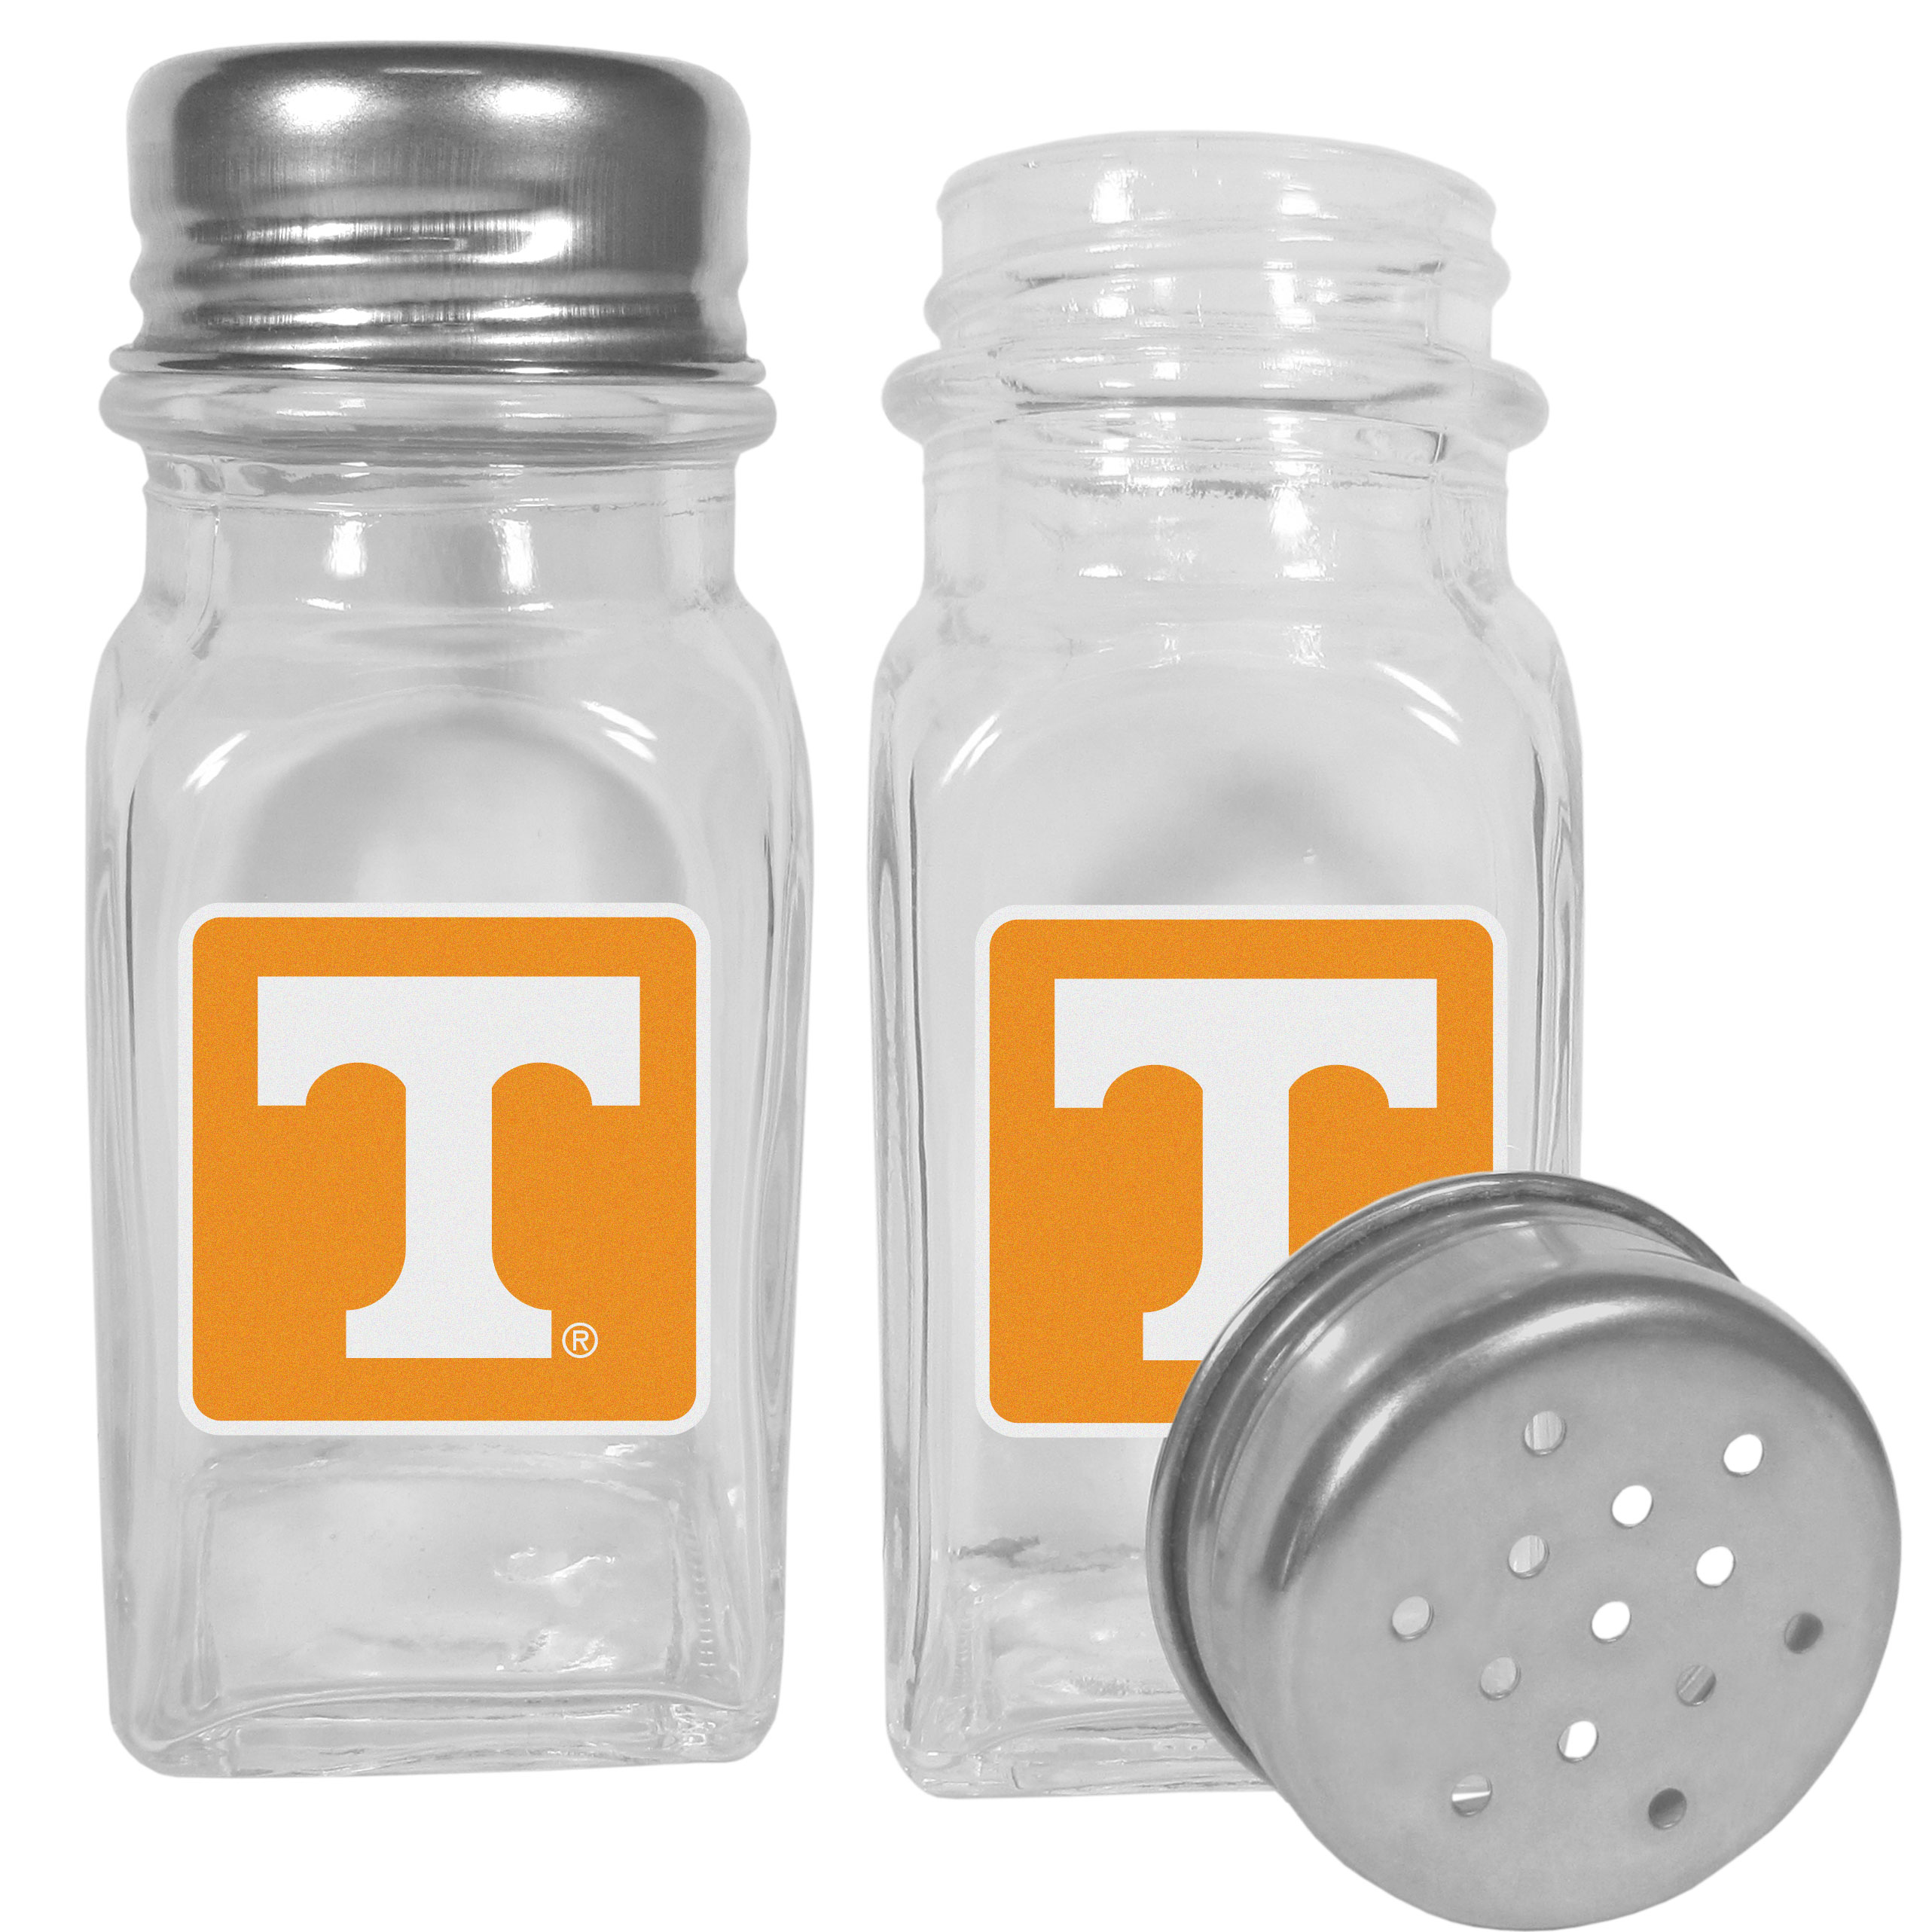 Tennessee Volunteers Graphics Salt and Pepper Shaker - No tailgate party is complete without your Tennessee Volunteers salt & pepper shakers featuring bright team logos. The diner replica salt and pepper shakers are glass with screw top lids. These team shakers are a great grill accessory whether you are barbecuing on the patio, picnicing or having a game day party.